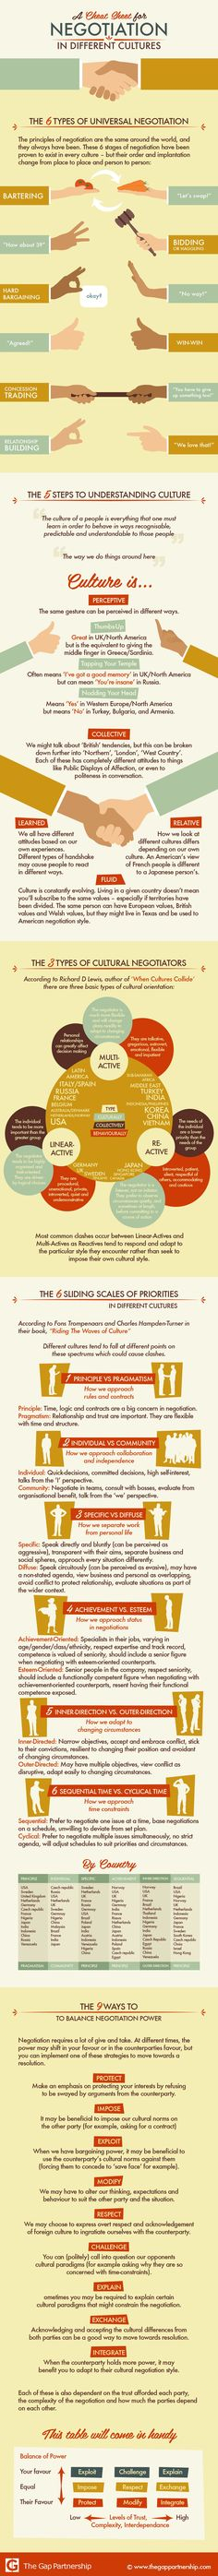 A Cheat Sheet For Negotiation In Different Cultures - #infographic